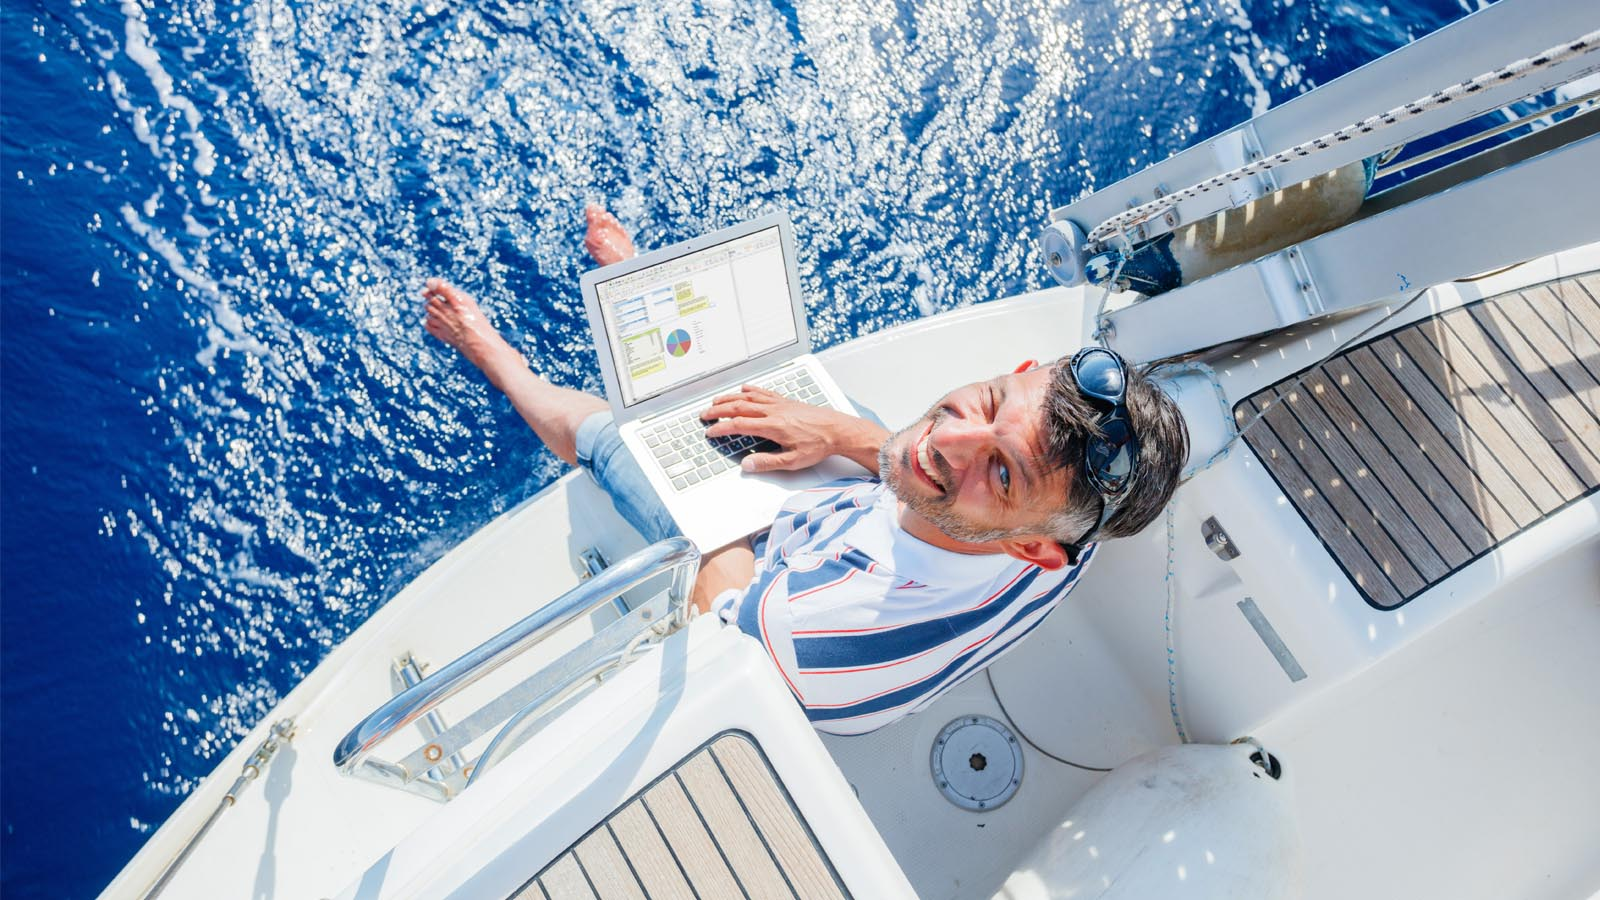 Man with laptop aboard a sailing yacht